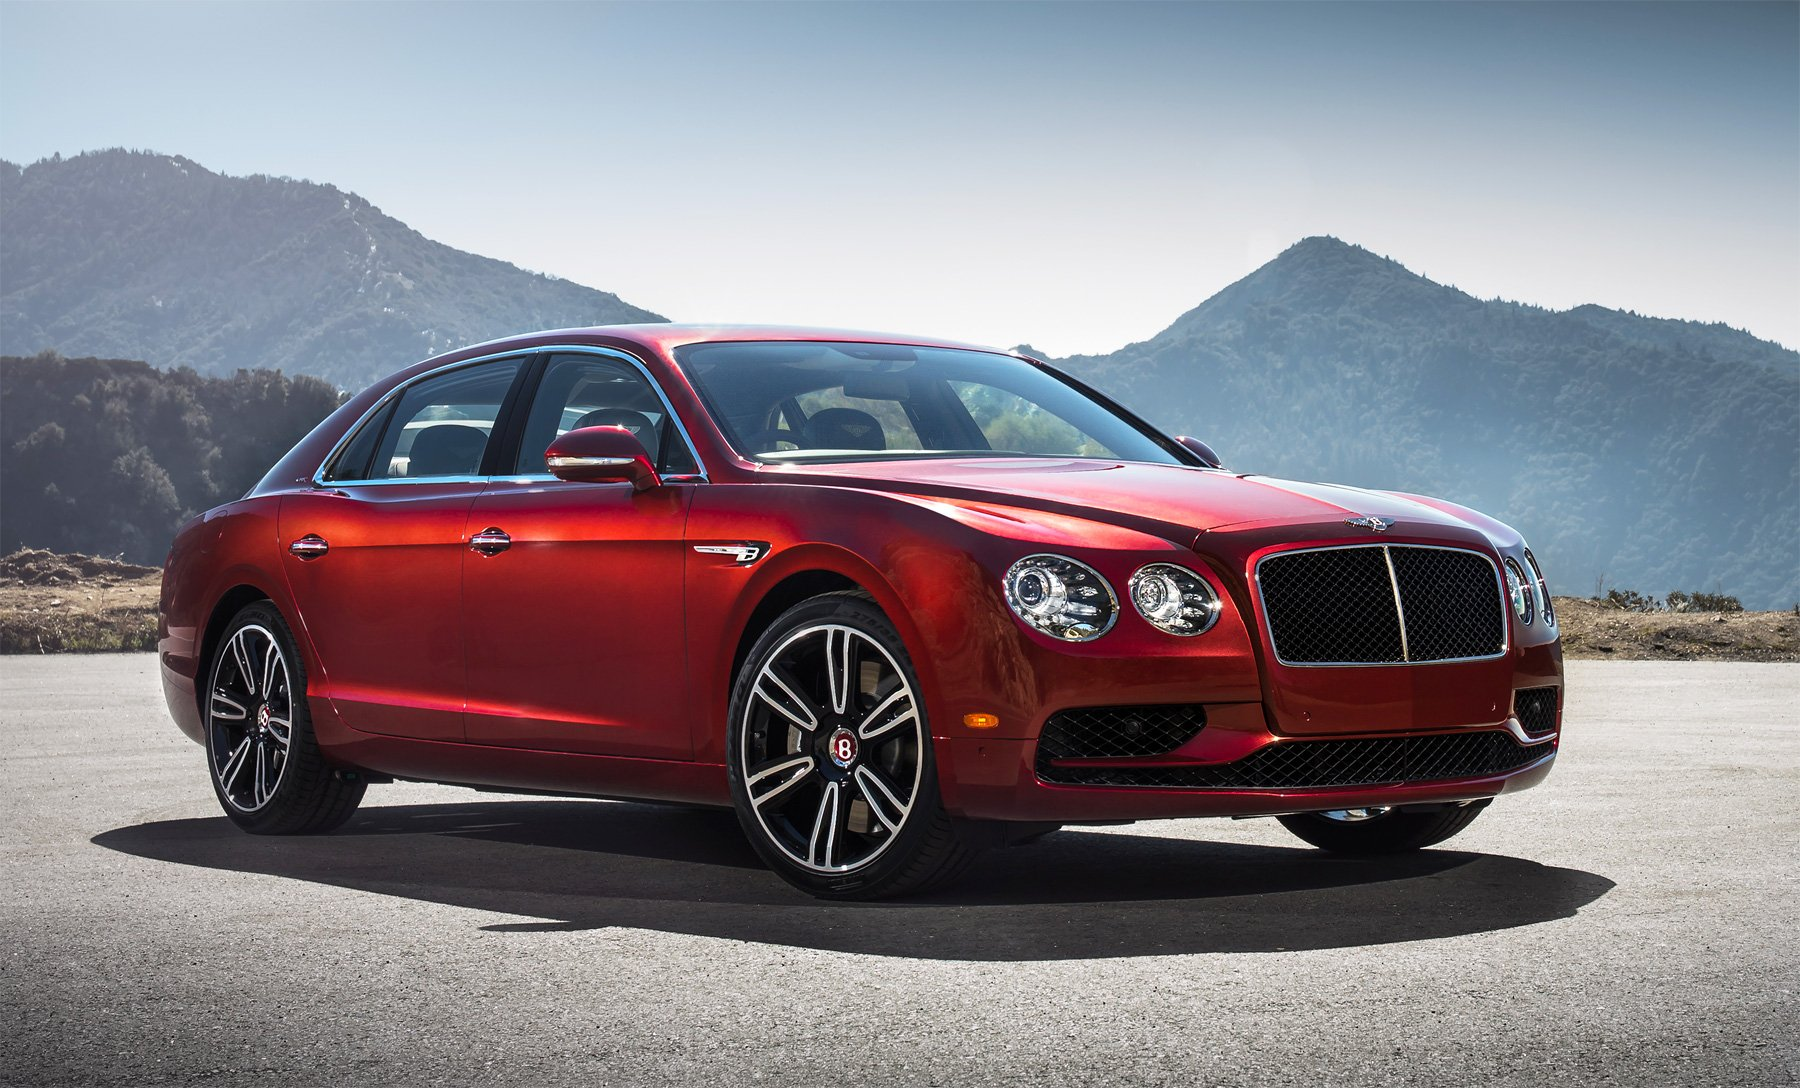 Auto Transport Reviews >> For the billionaires - The Bentley Mulsanne's very limited ...